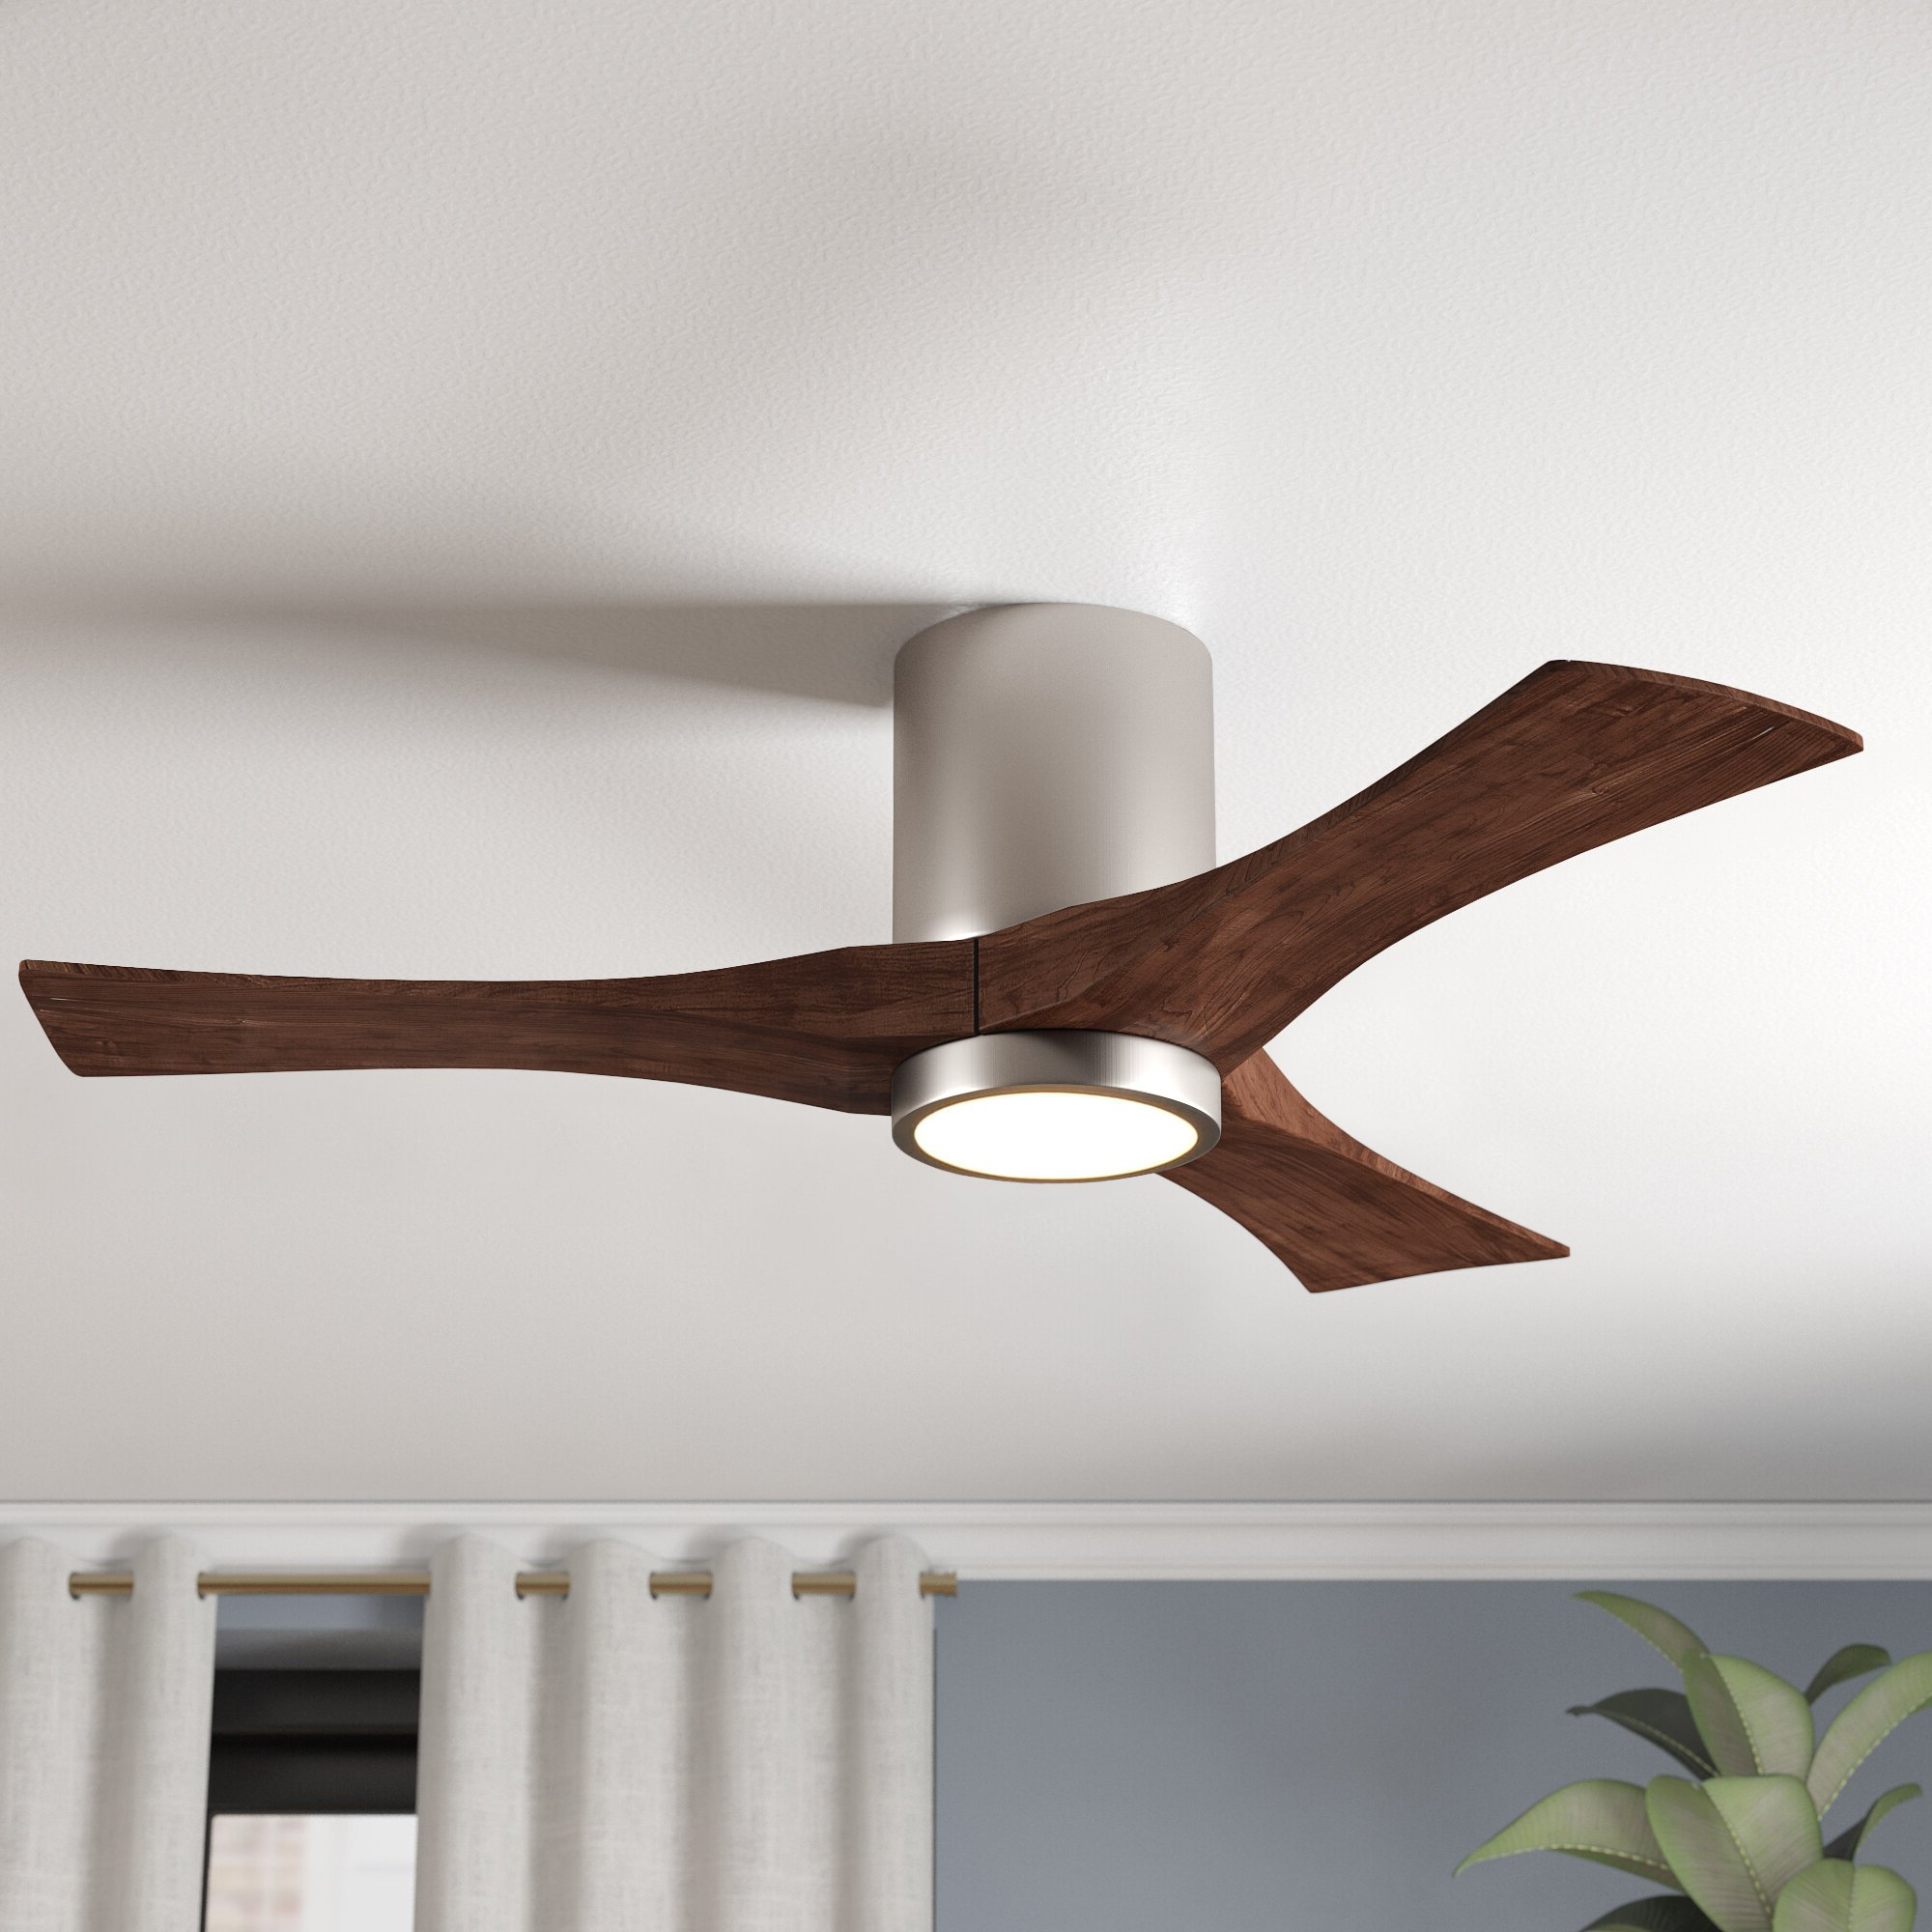 "Newest 52"" Rosalind 3 Blade Hugger Ceiling Fan With Wall Remote And Light Kit With Regard To Embrace 3 Blade Ceiling Fans (View 7 of 20)"